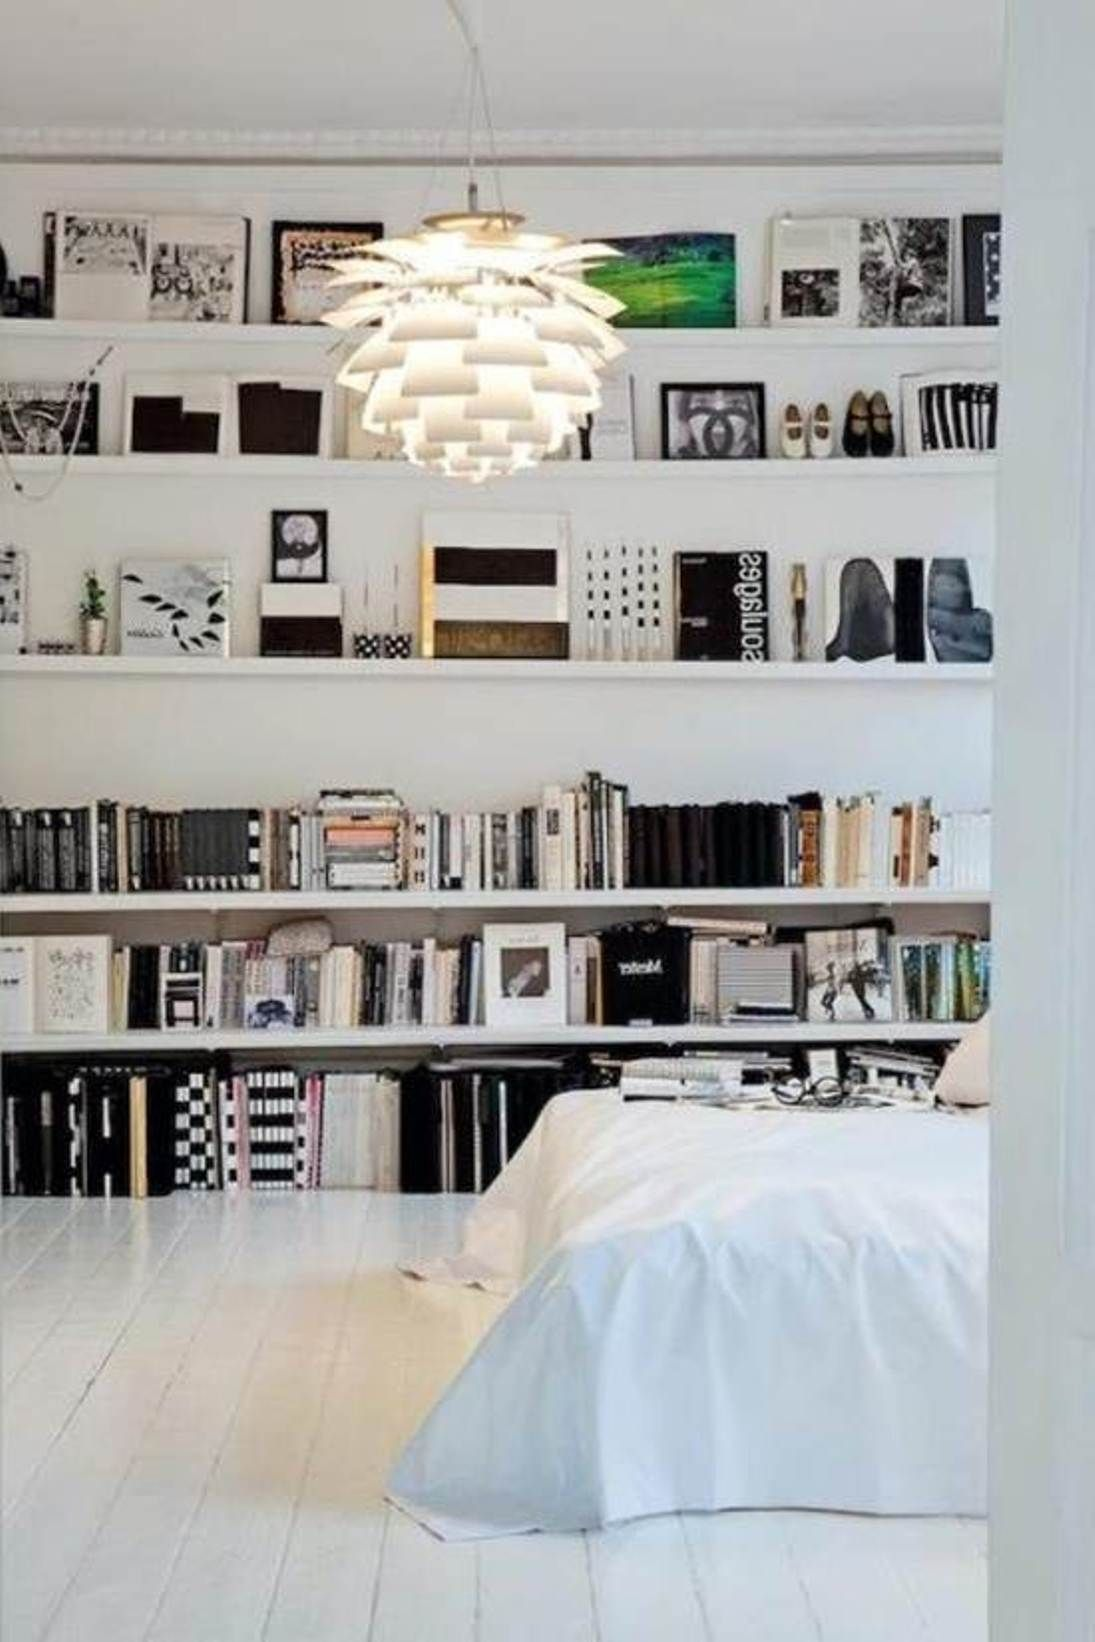 Clever SpaceSaving Design Ideas For Small Homes Space Saving - Clever space saving ideas for small room layouts